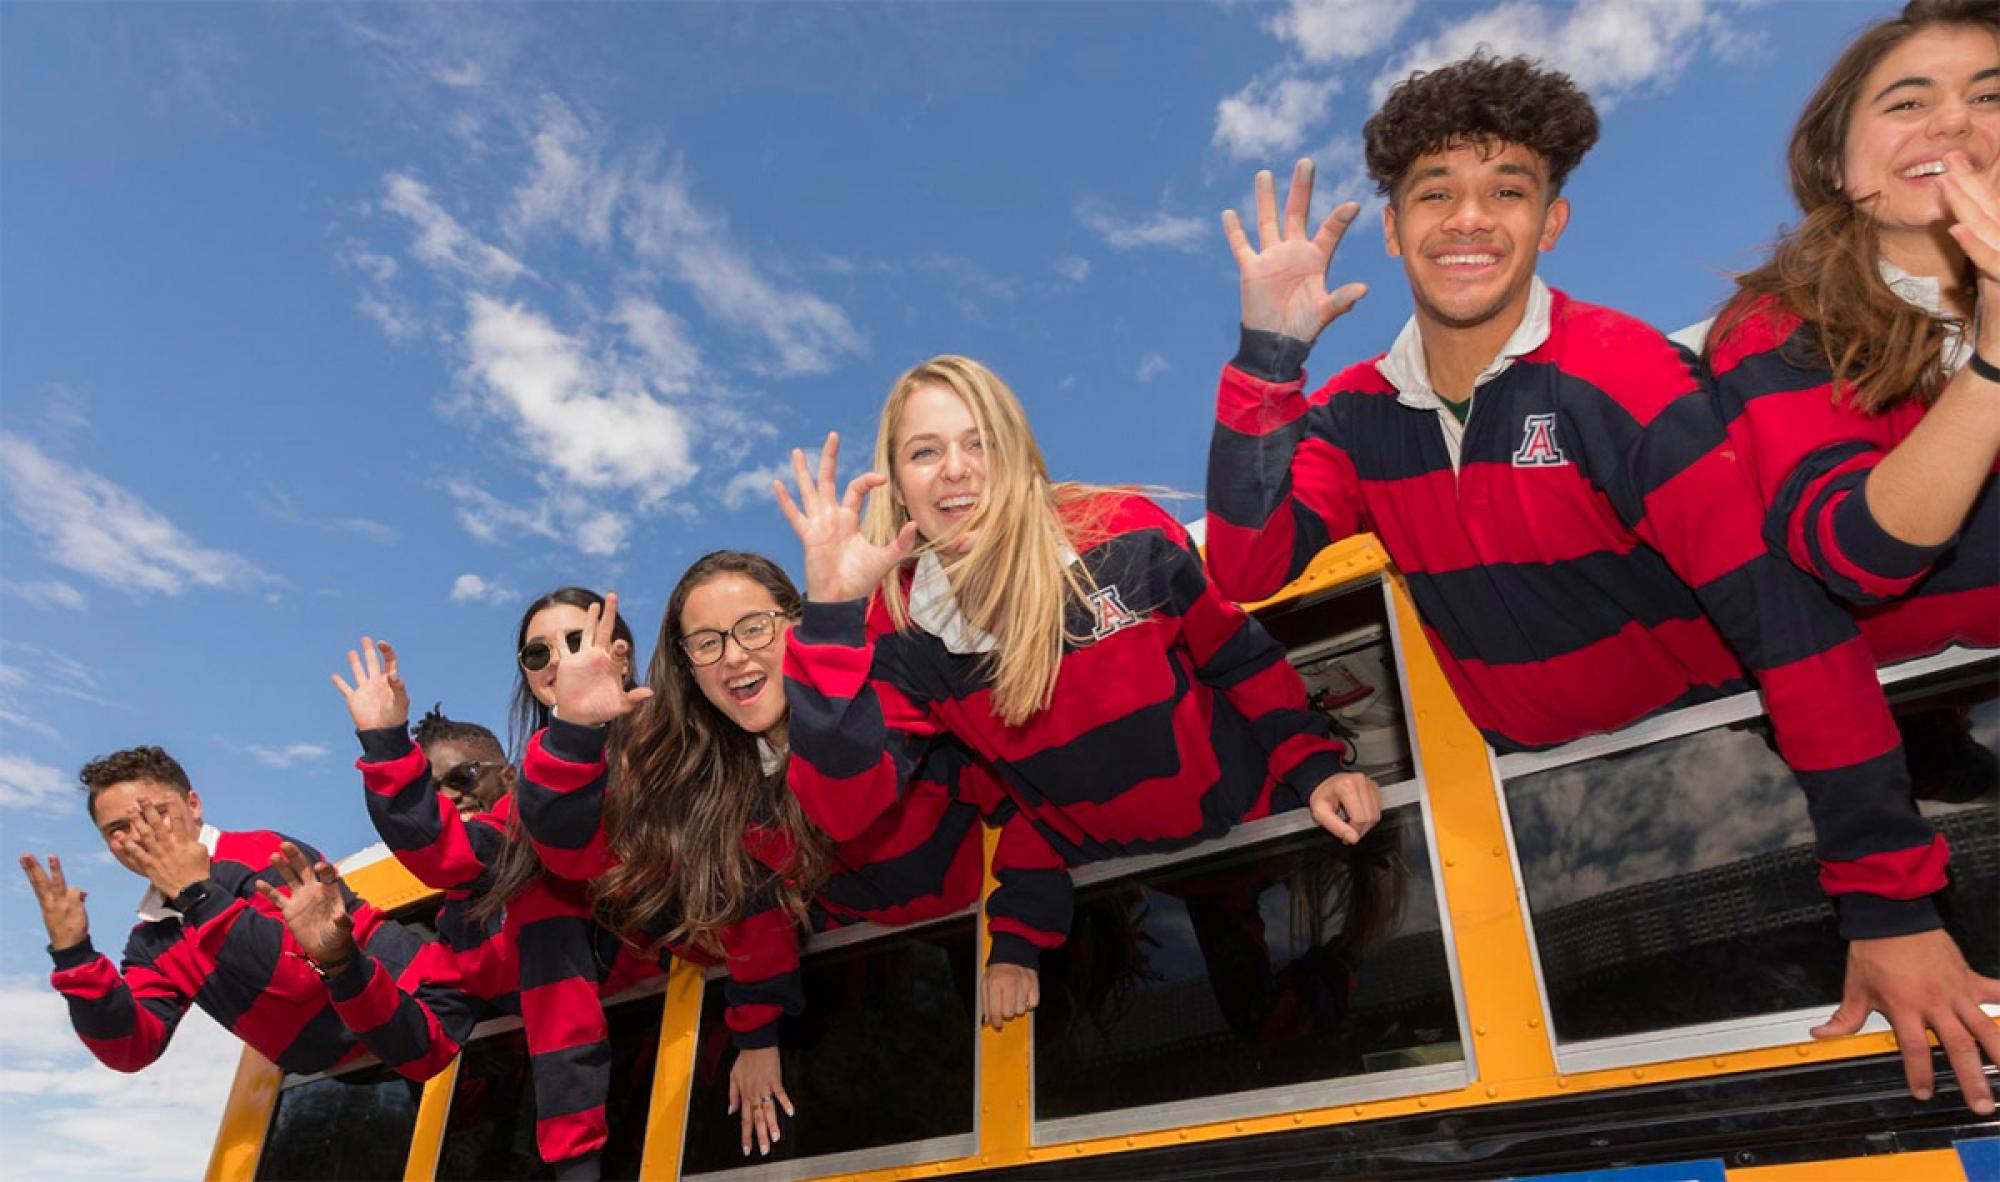 Photo of students waving from bus